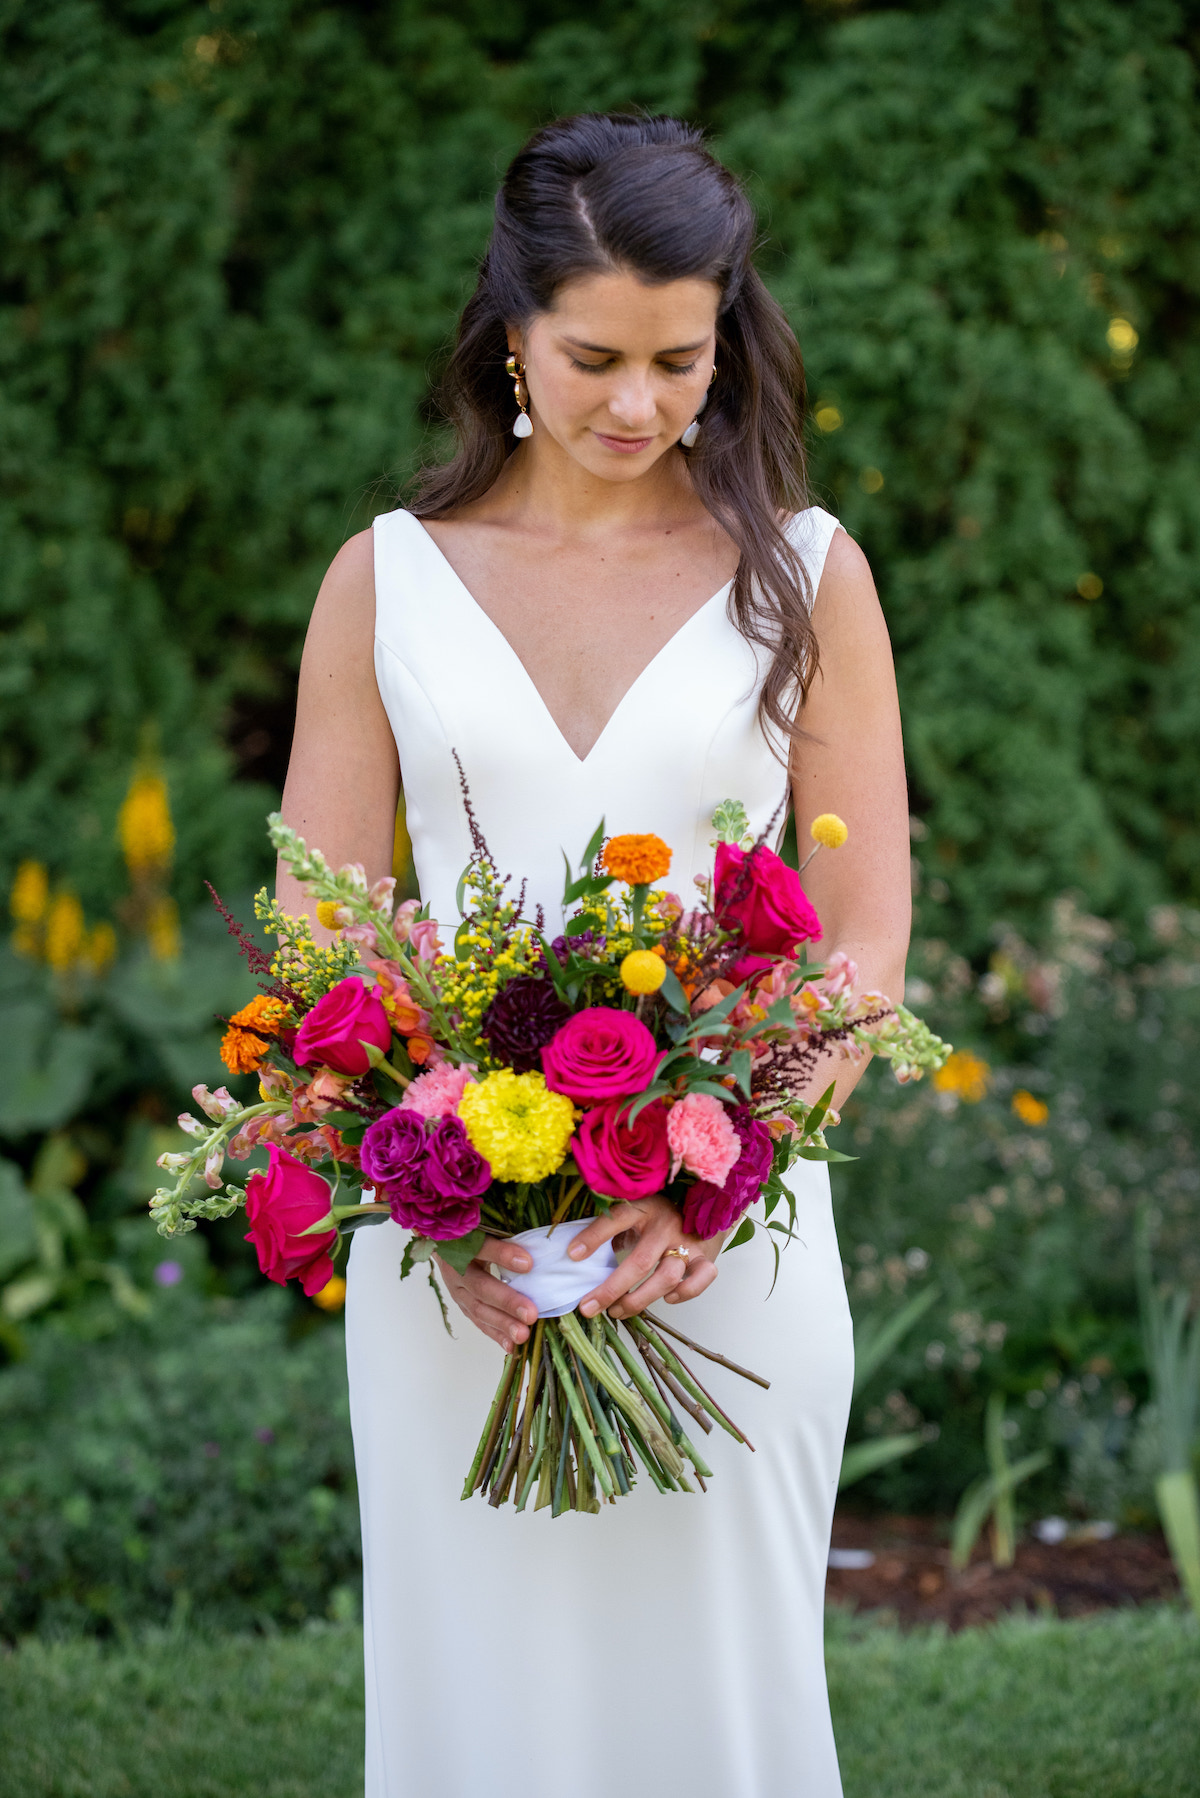 Colorful traditional summer bouquet for bride